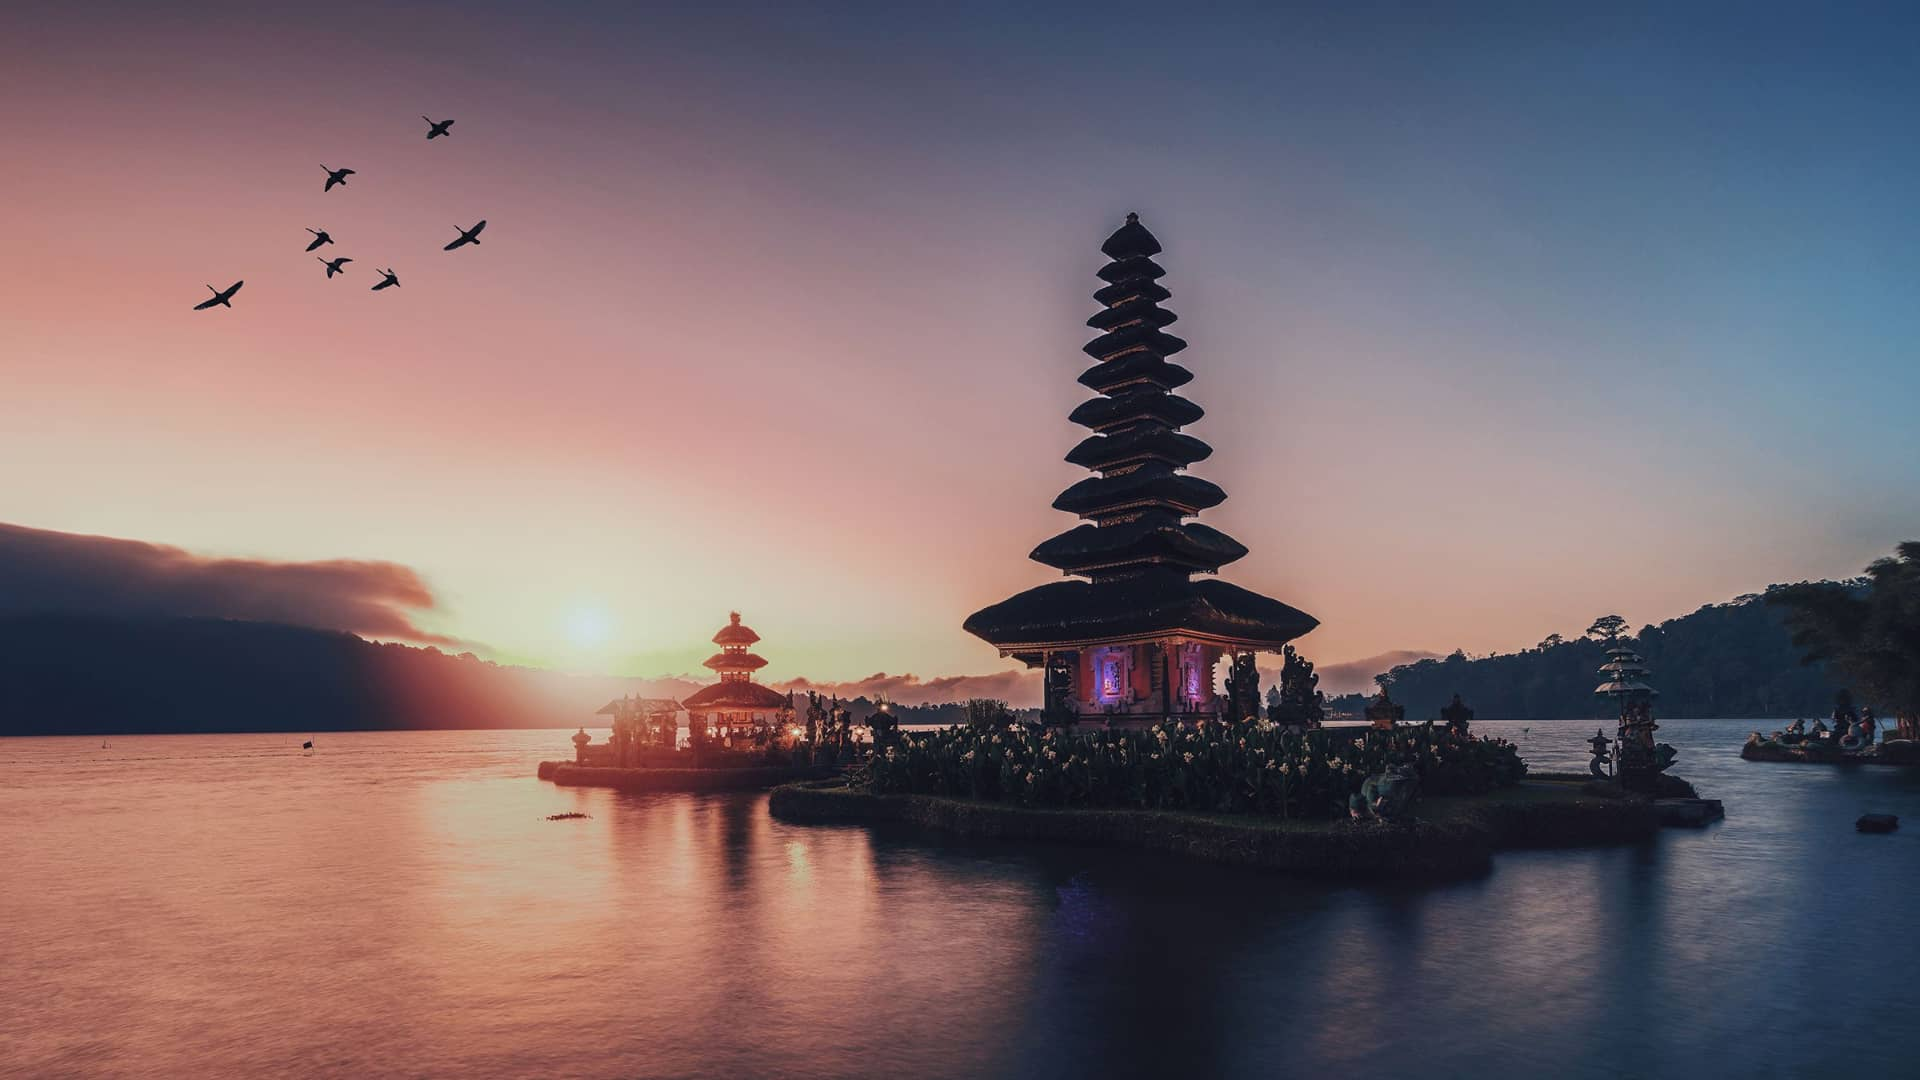 Bali Indonesia temple during sunset